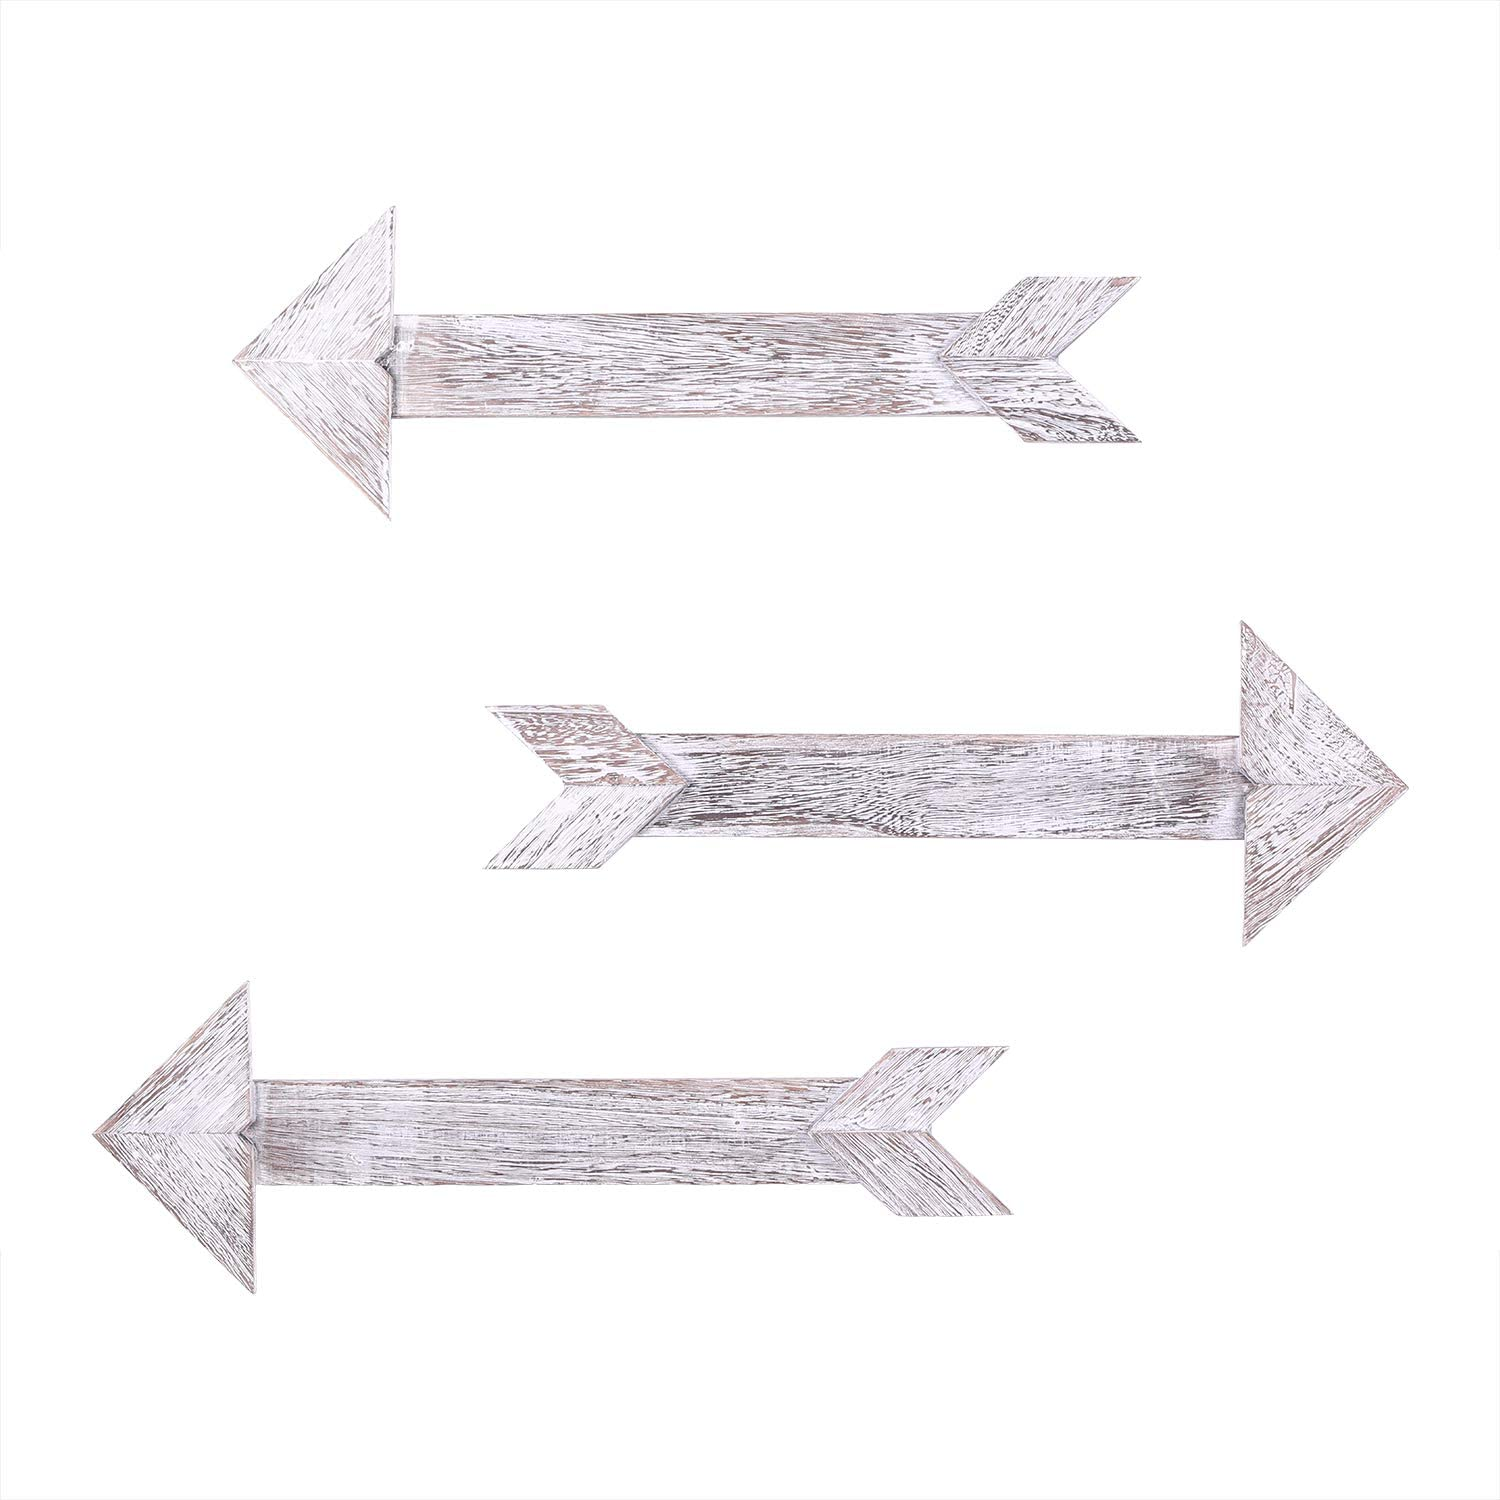 Comfify Arrow Barnwood Decorative Wooden Sign – Set of 3 Arrows for Wall Décor in Rustic White – Wood Decorative Signs - Rustic Home Décor Accents – Double Sided Stickers Included